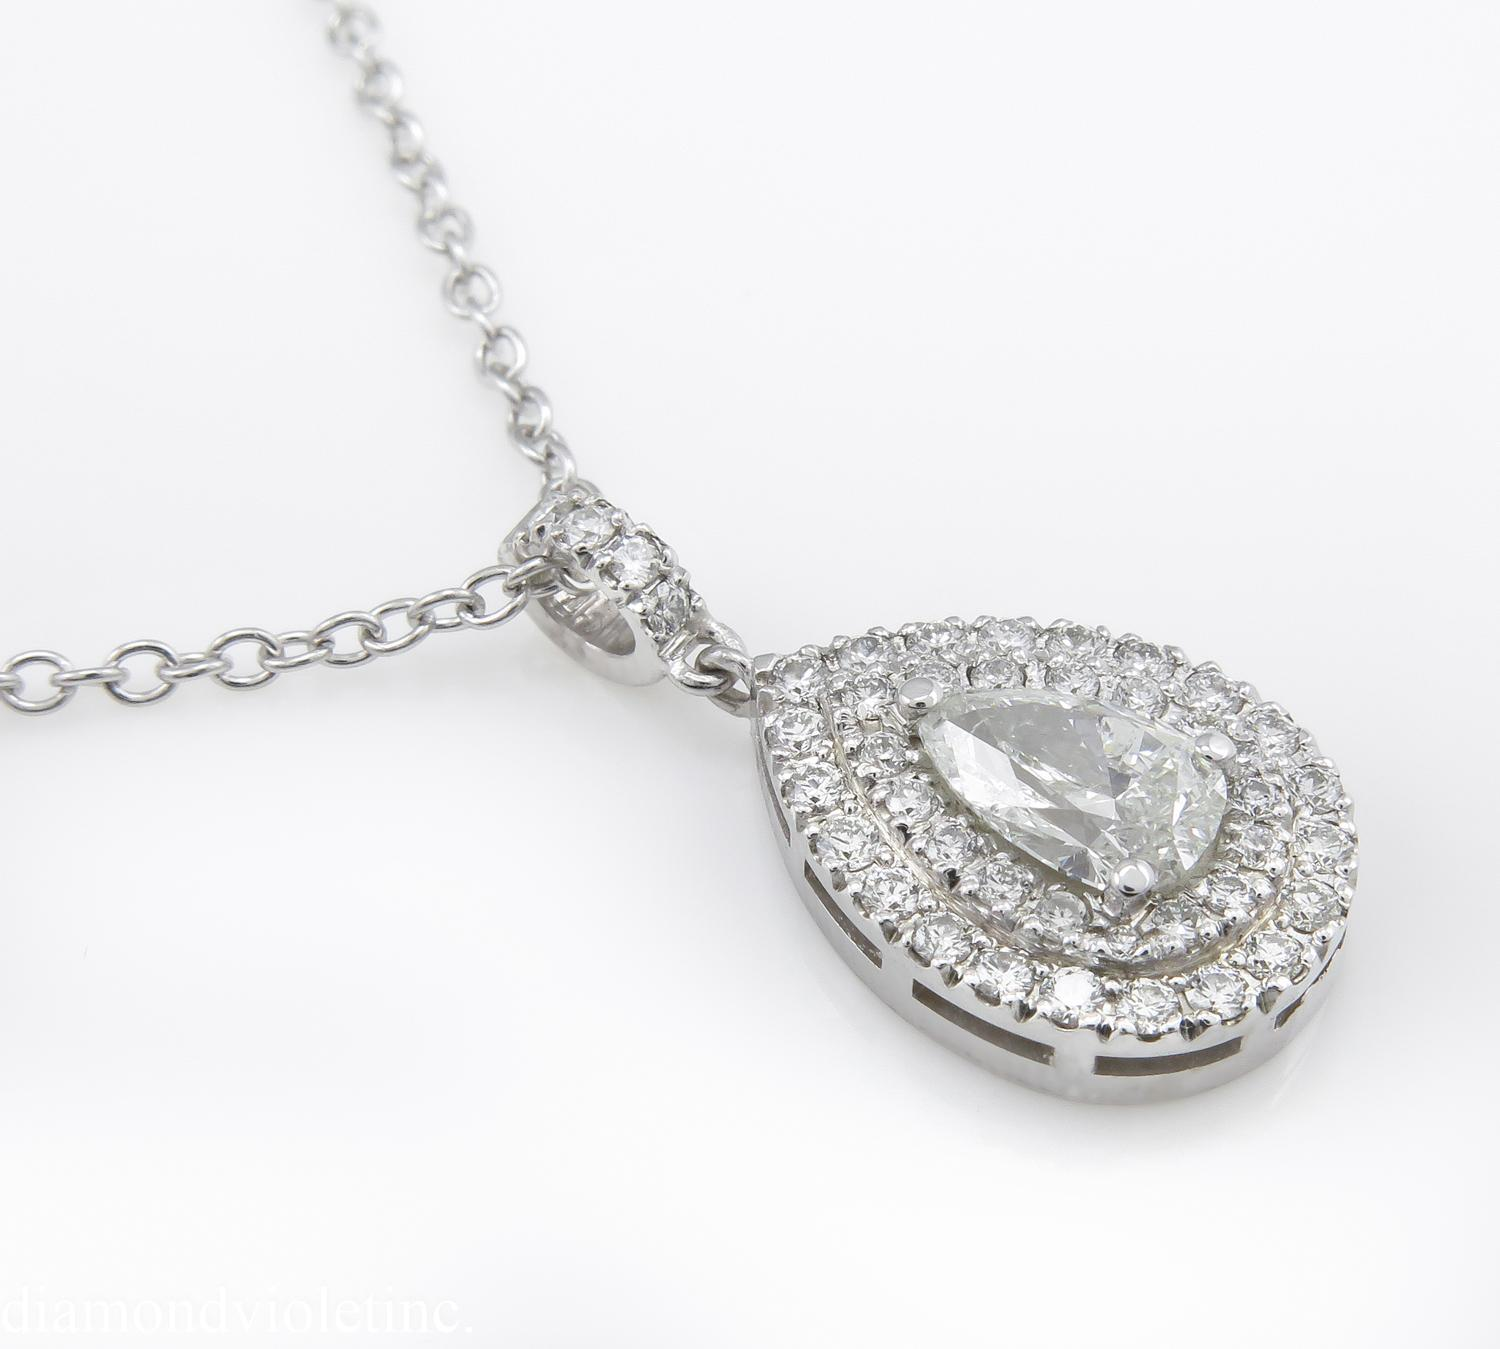 Fresh pear shaped diamond pendants jewellrys website 1 16ct estate vintage pear diamond pendant necklace 18k white gold mozeypictures Images